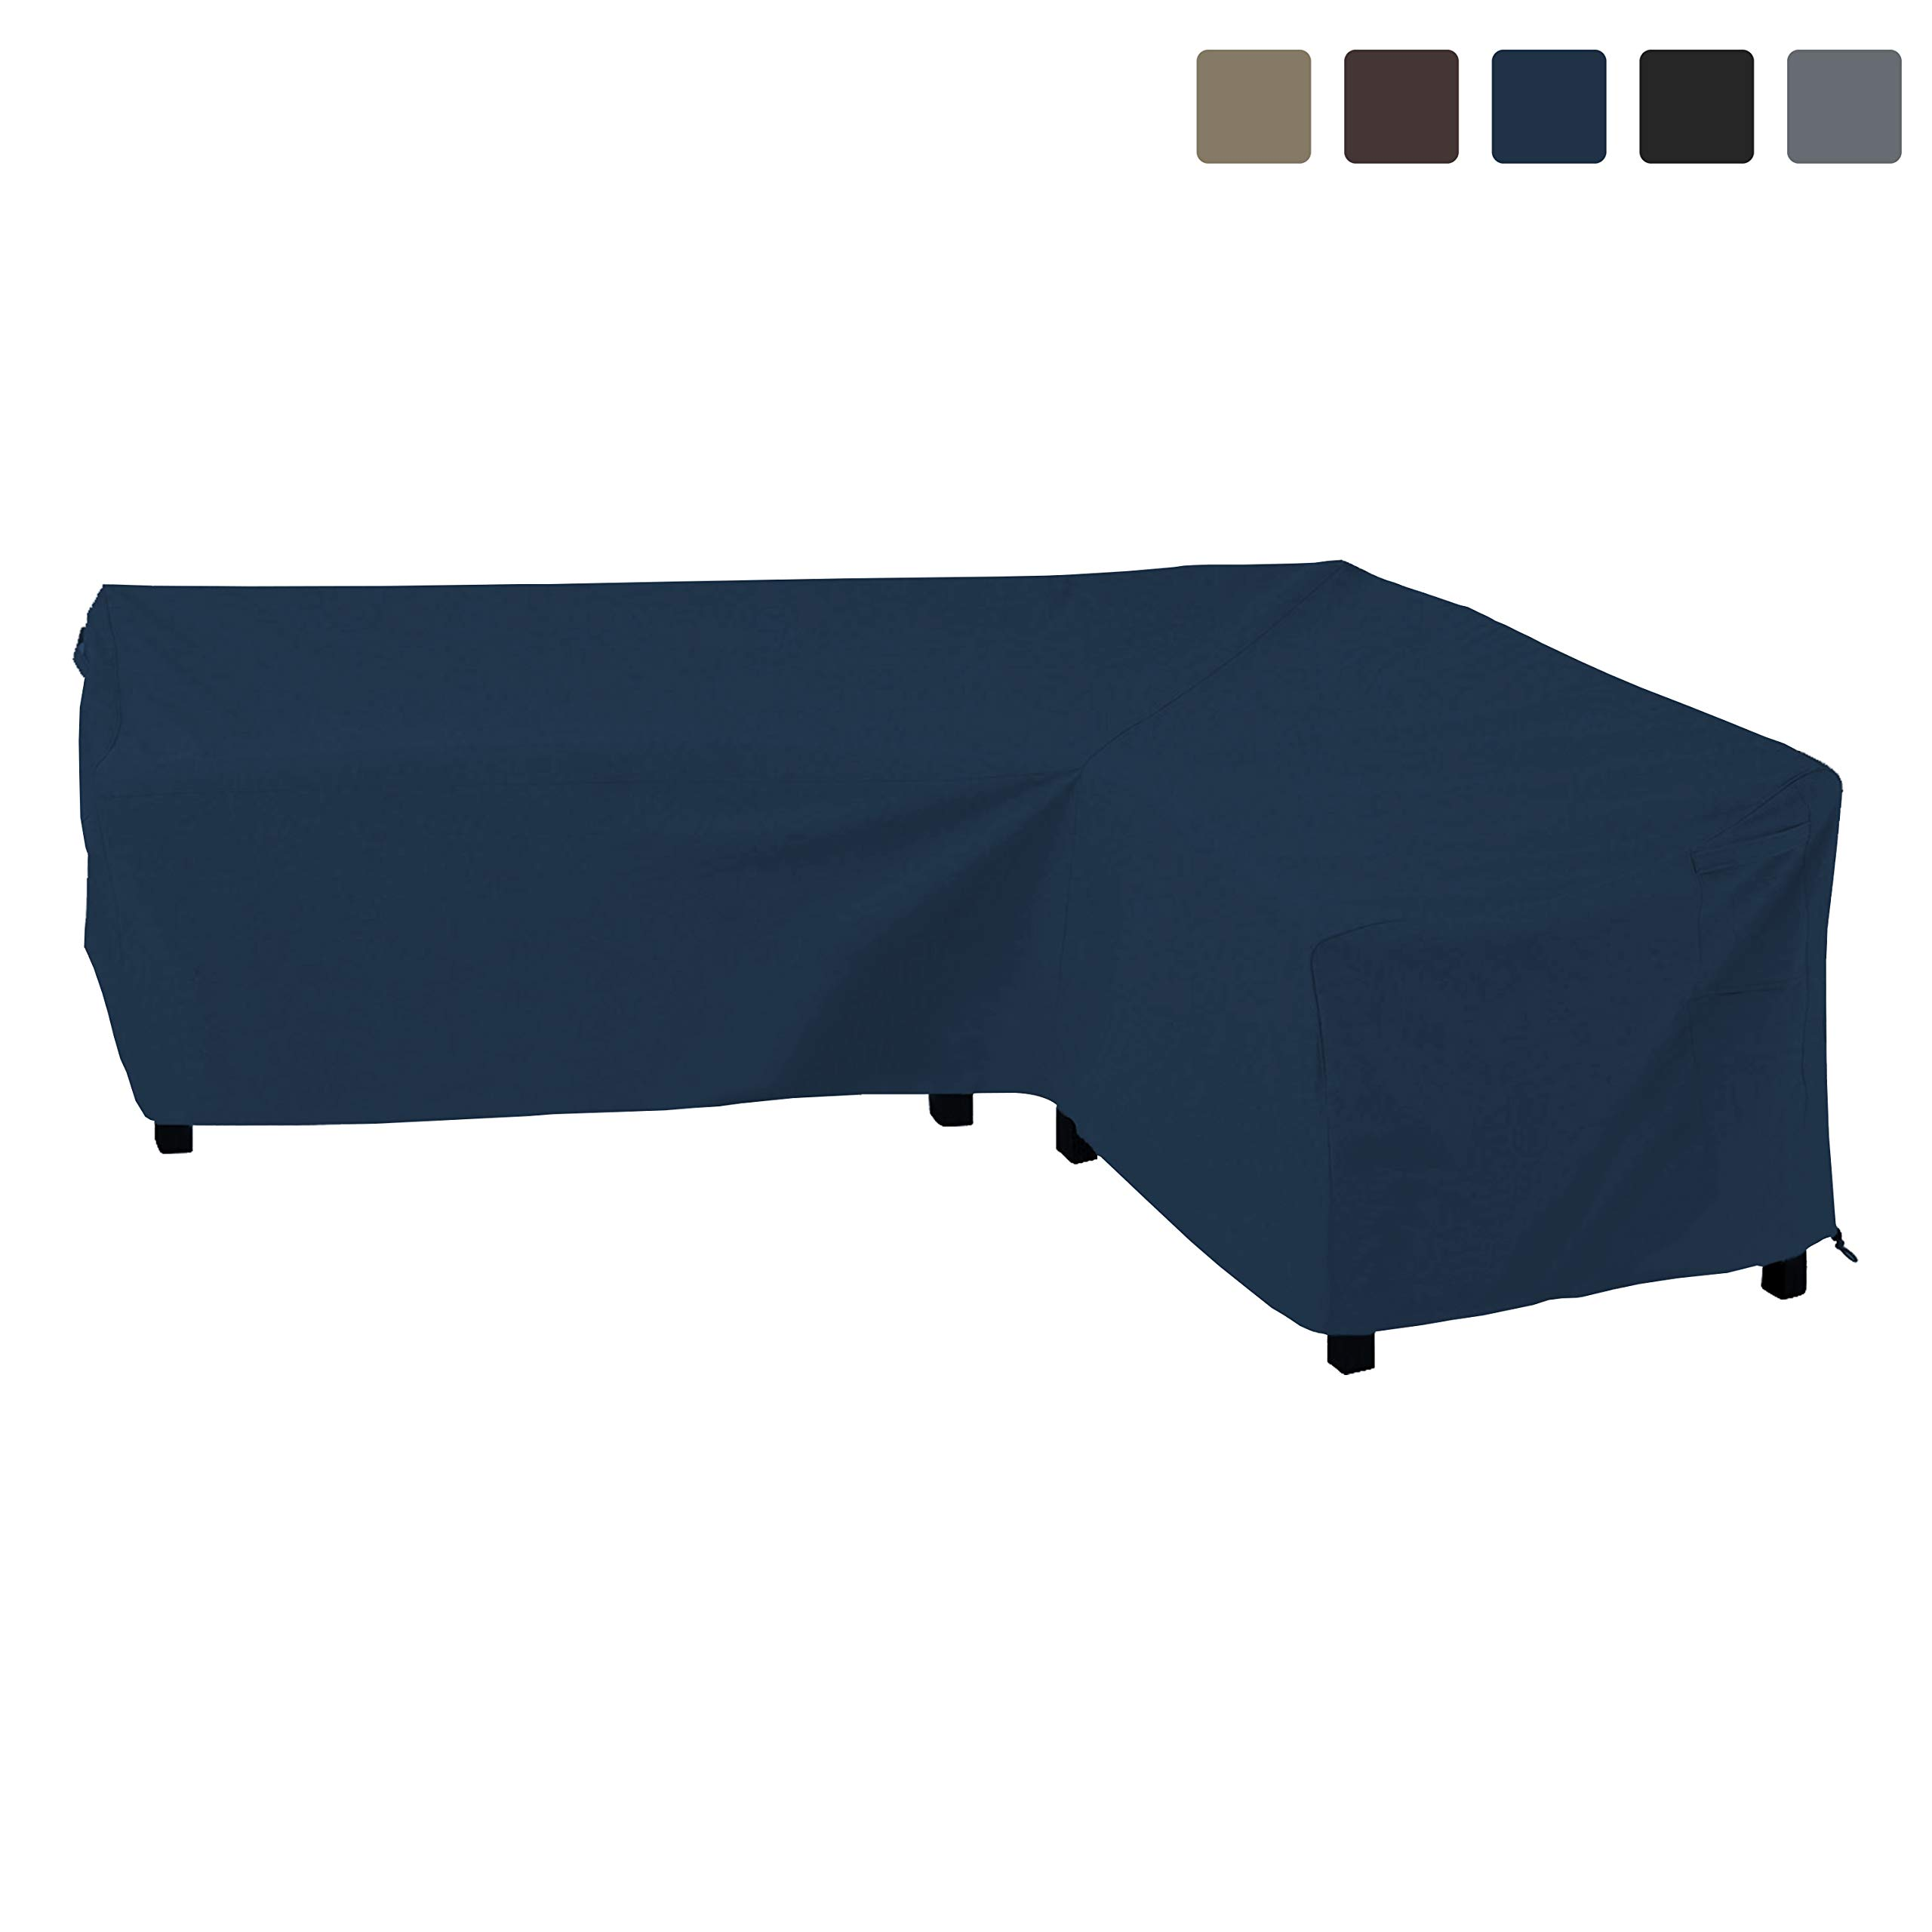 COVERS & ALL Patio Sectional Sofa Cover 12 Oz Waterproof - 100% UV & Weather Resistant PVC Coated 83'' x 104'' x 32''D x 31'' H - L Shape Sofa Cover for Indoor/Outdoor (Right Facing Sofa, Blue)